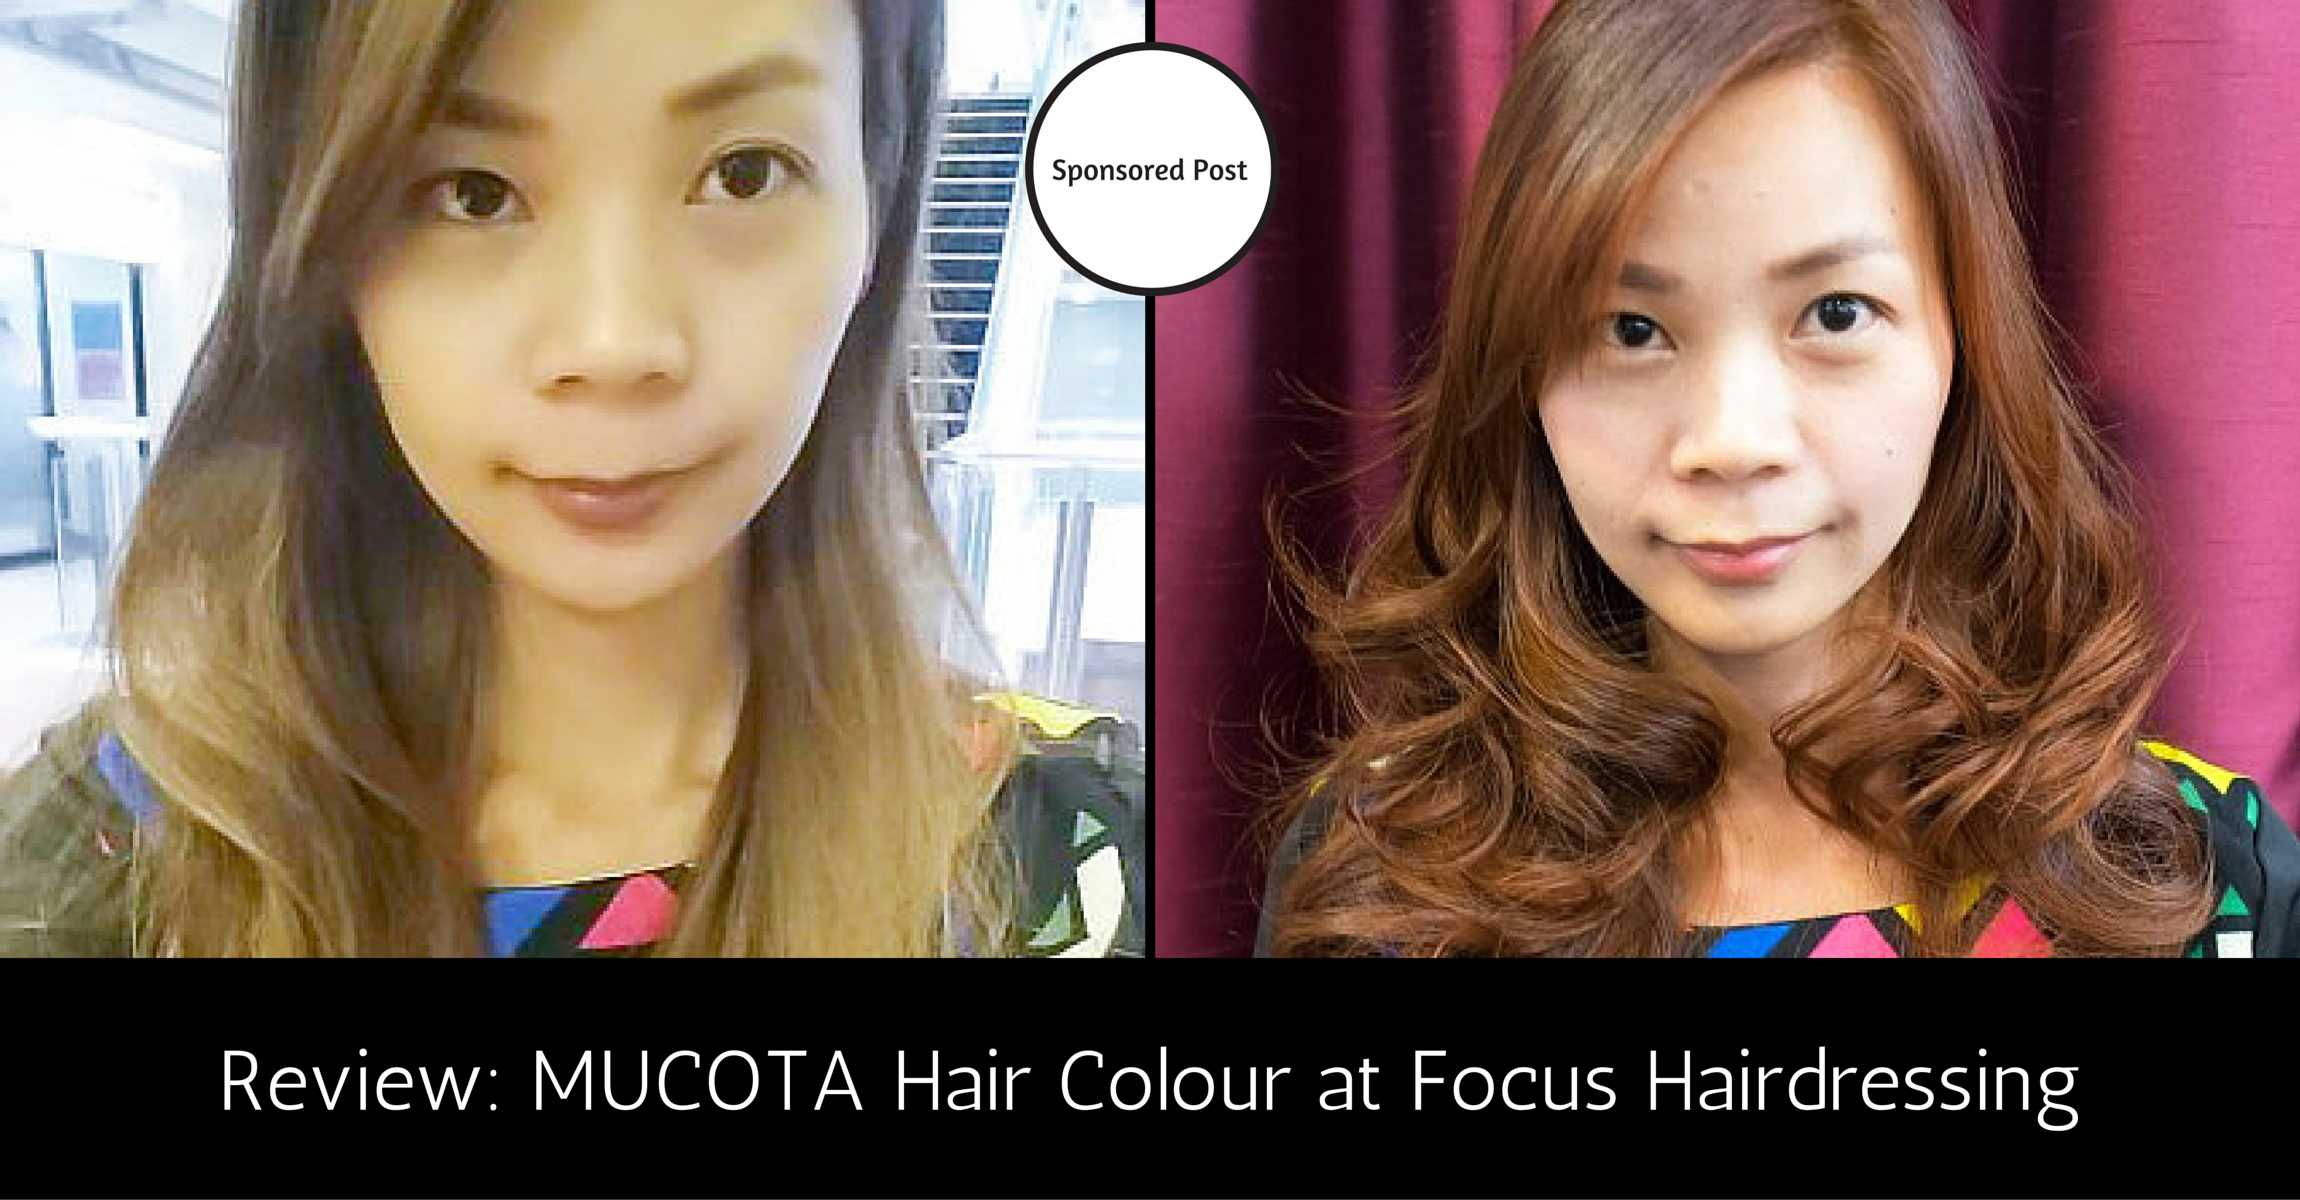 2014 Holiday Lookbook #3: MUCOTA Hair Colour at Focus Hairdressing